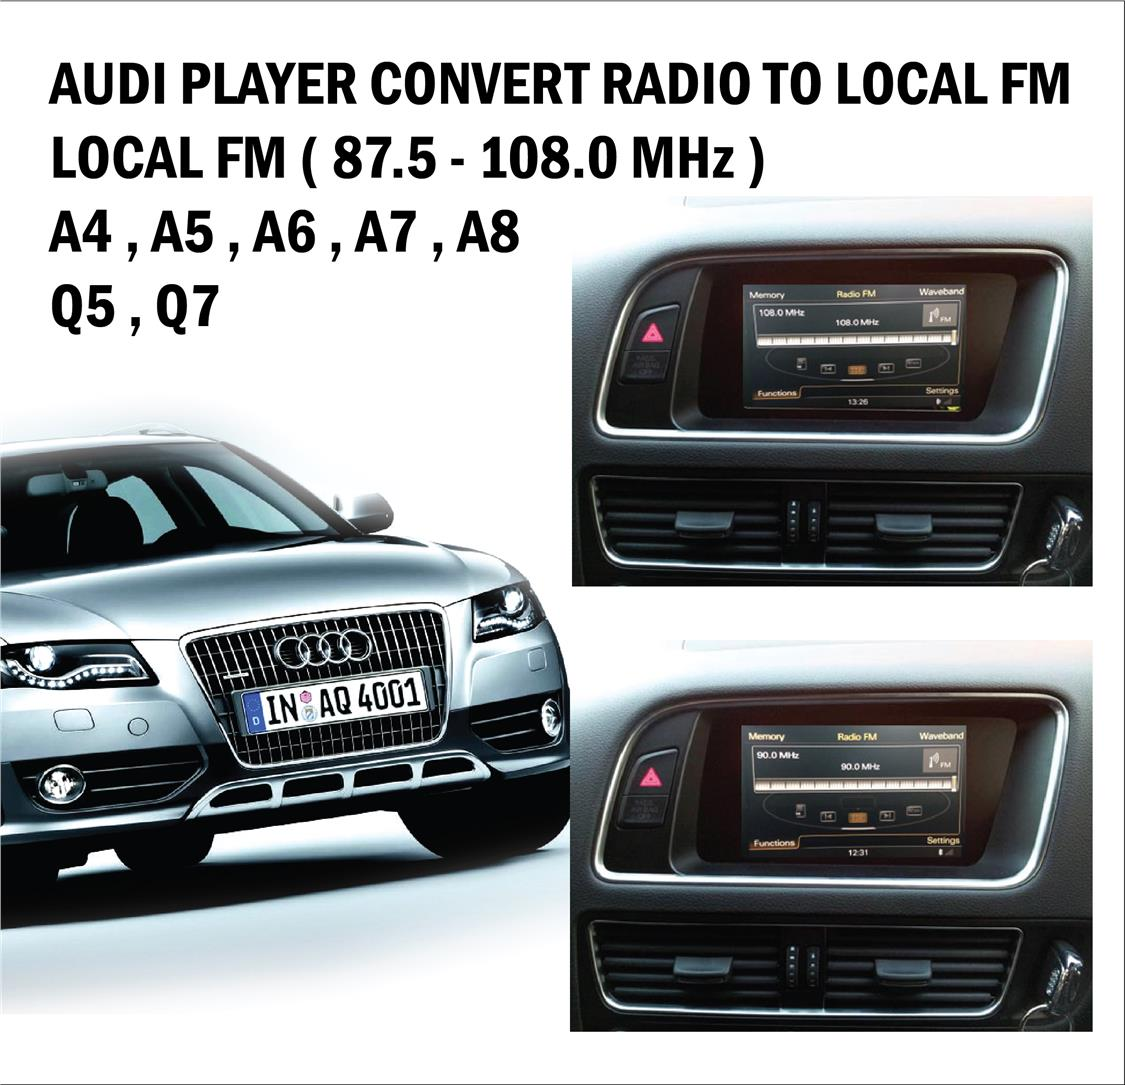 AUDI (2009-2015) A4,A5,A6,A7,A8,Q5,Q7  JAPAN RADIO CONVERT TO LOCAL FM